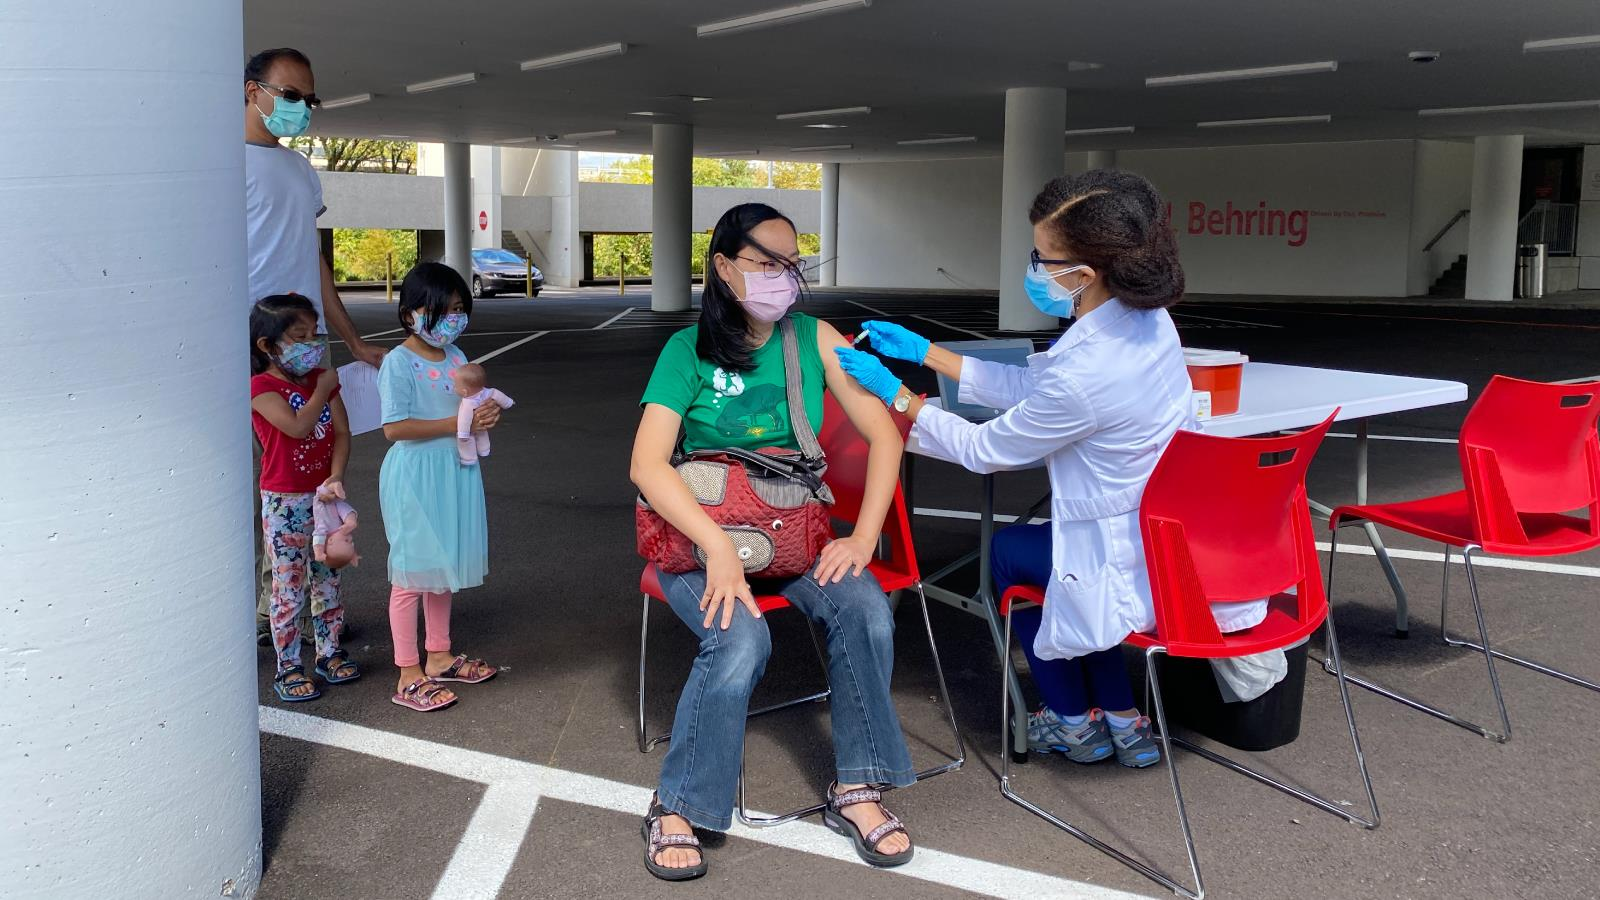 Dad and two daughters wait while their mother gets a flu shot outside.